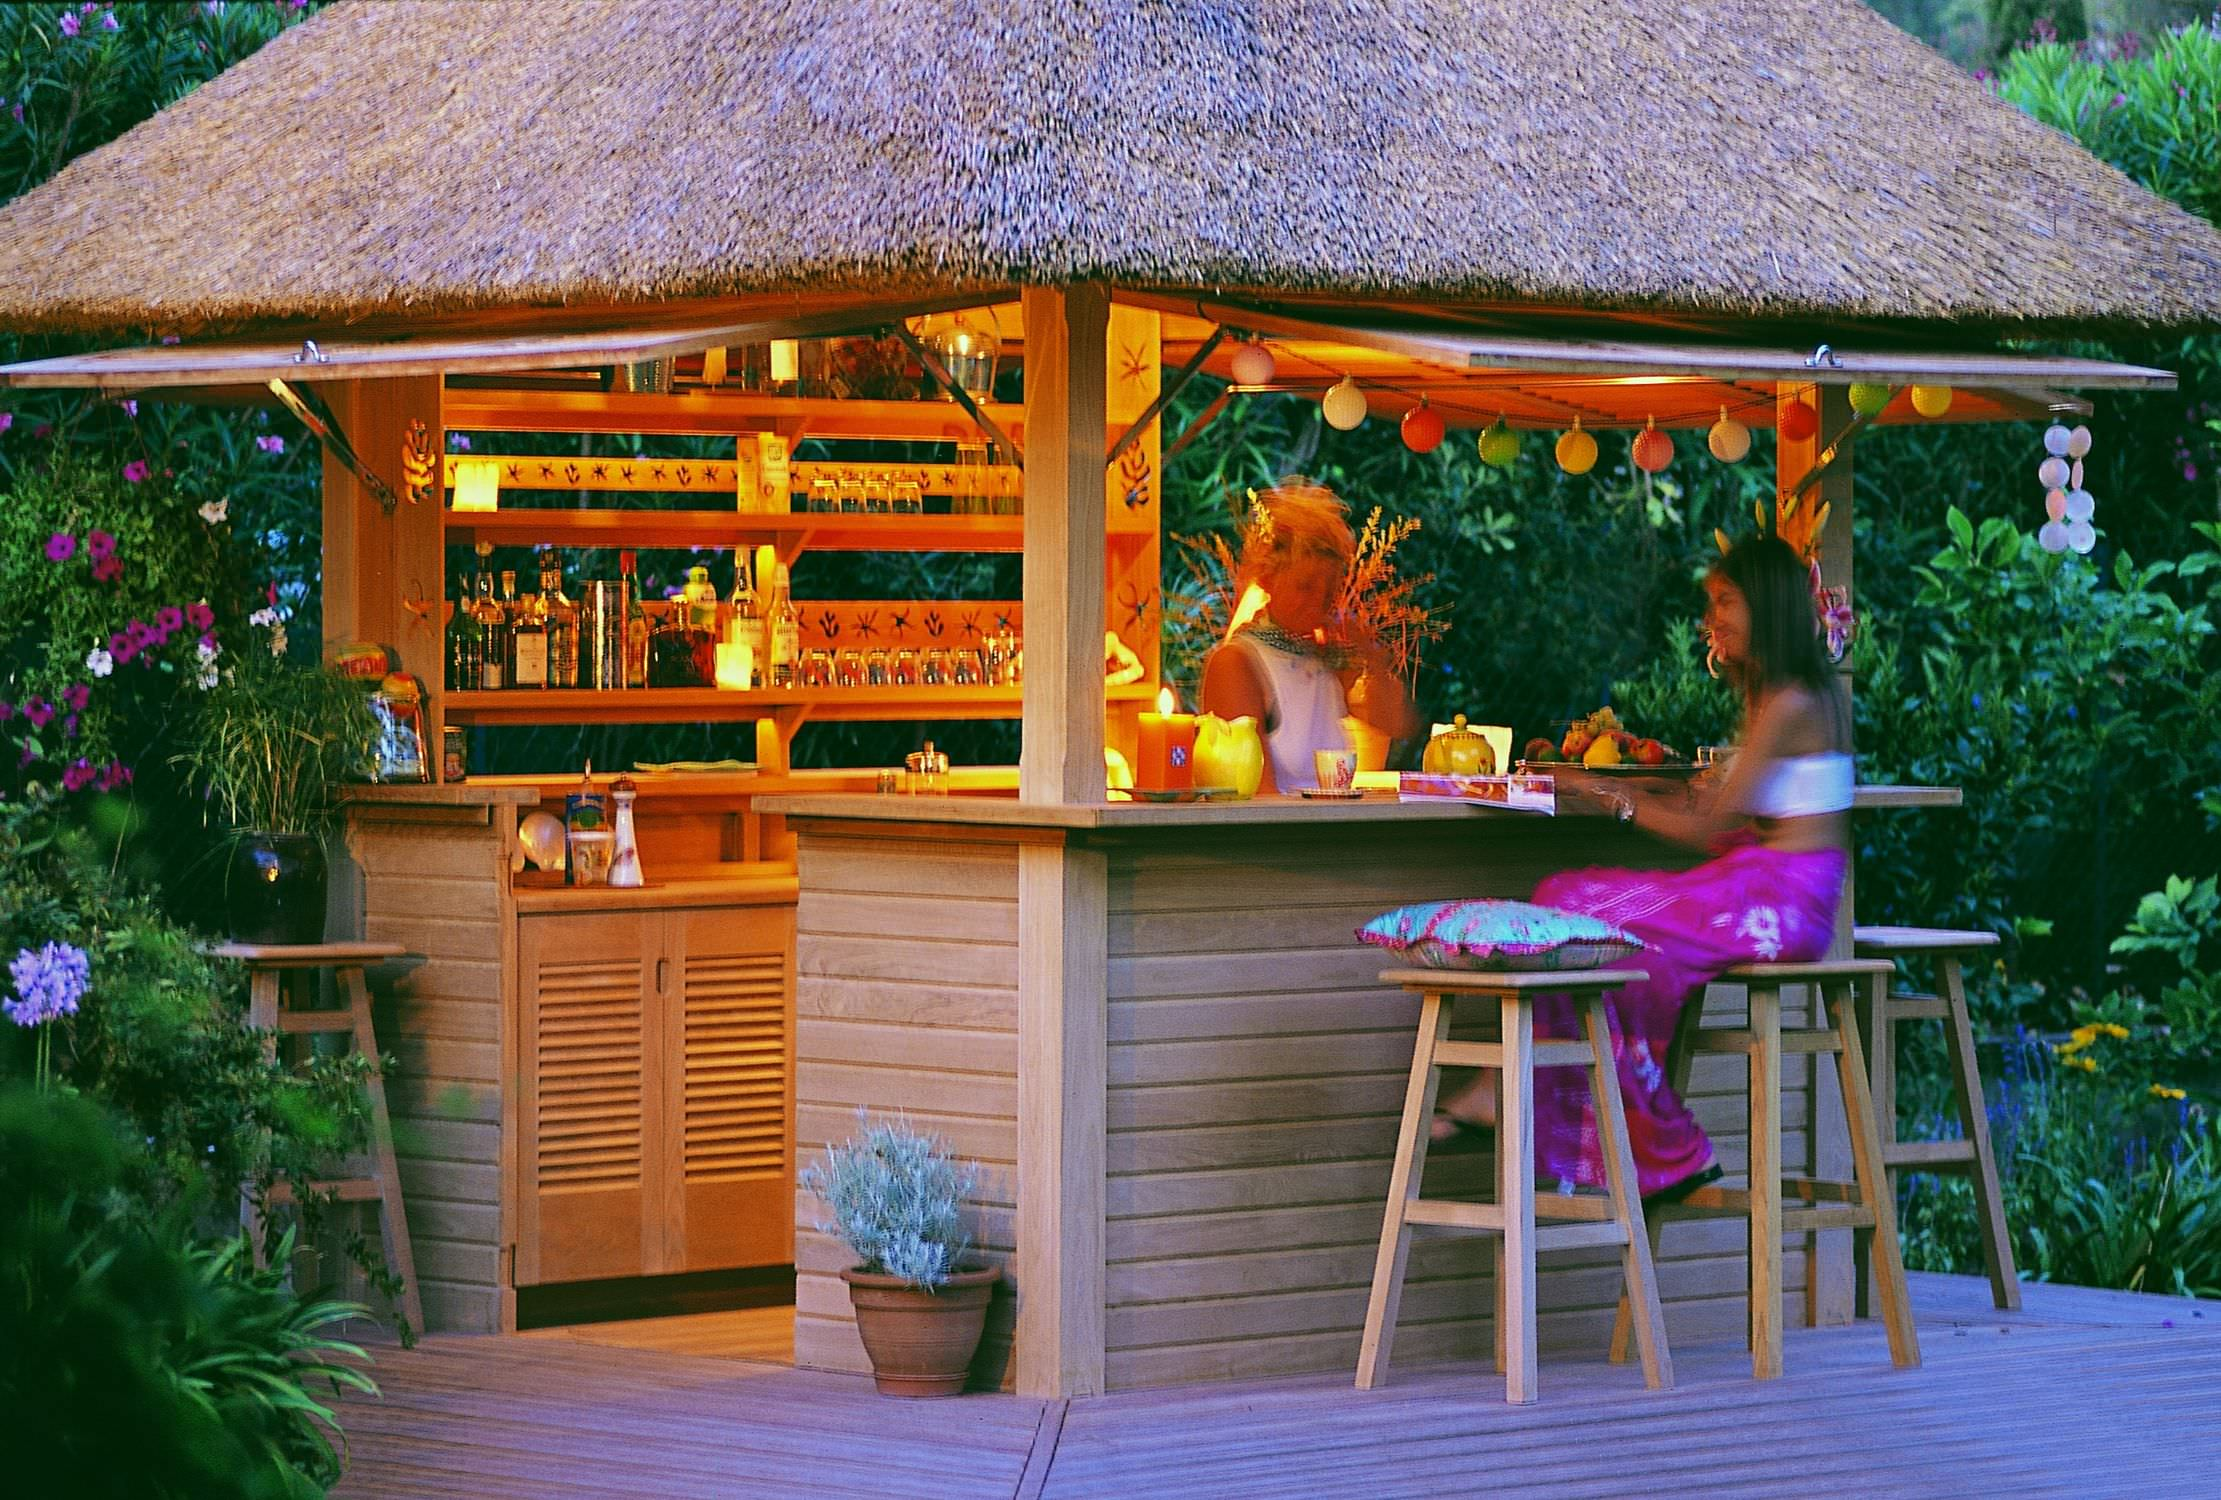 residential garden bar - pirateu0027s tavern PJUMVER